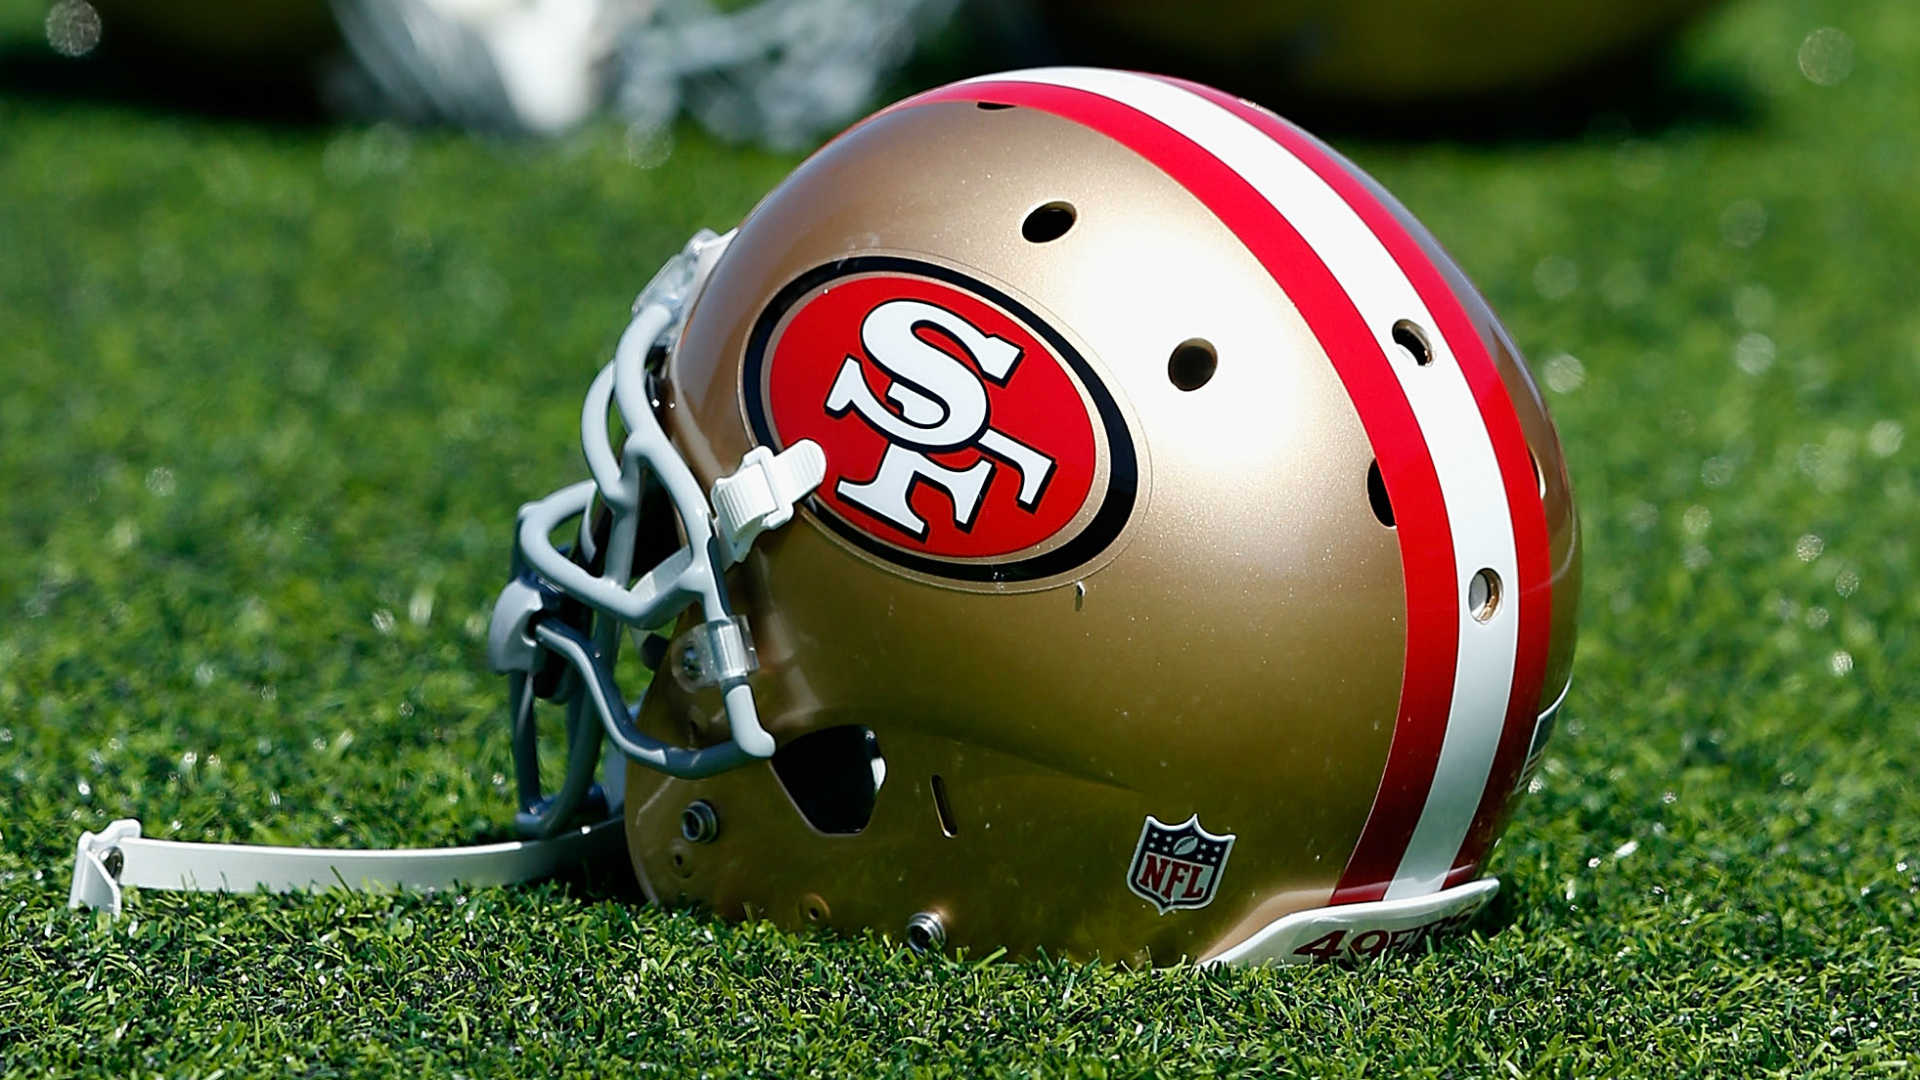 49ersField-080615-USNews-Getty-FTR